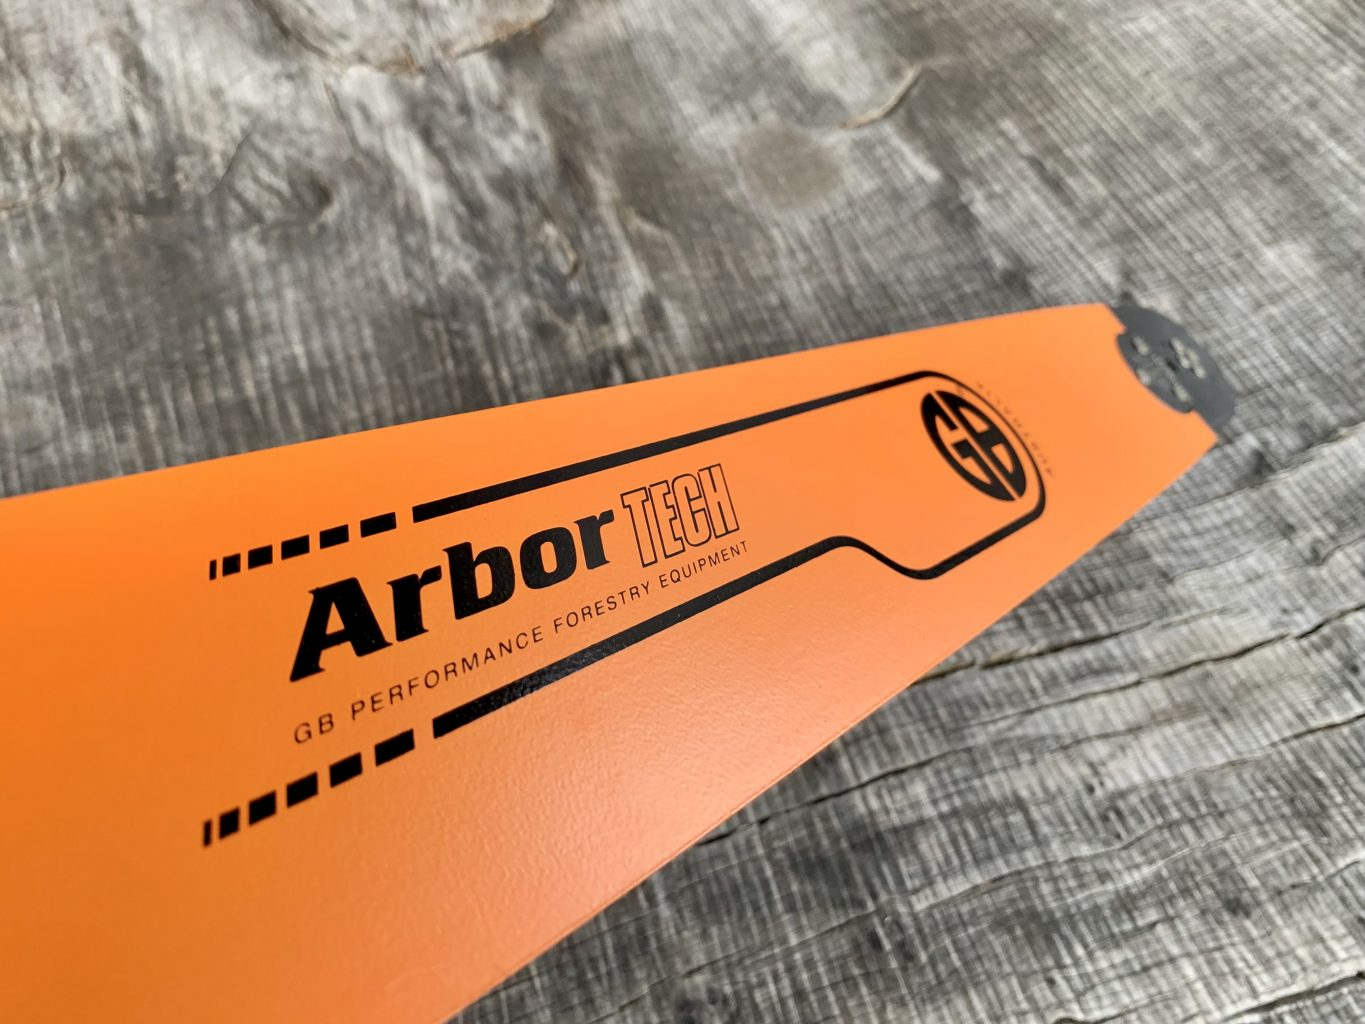 "SNHS42-50WR 42""[107cm] GB Slotted Lo Pro Milling Bar For Stihl 064, 065, 066, MS650, MS660, MS661 3/8 Lo Pro .050 137 drive links"